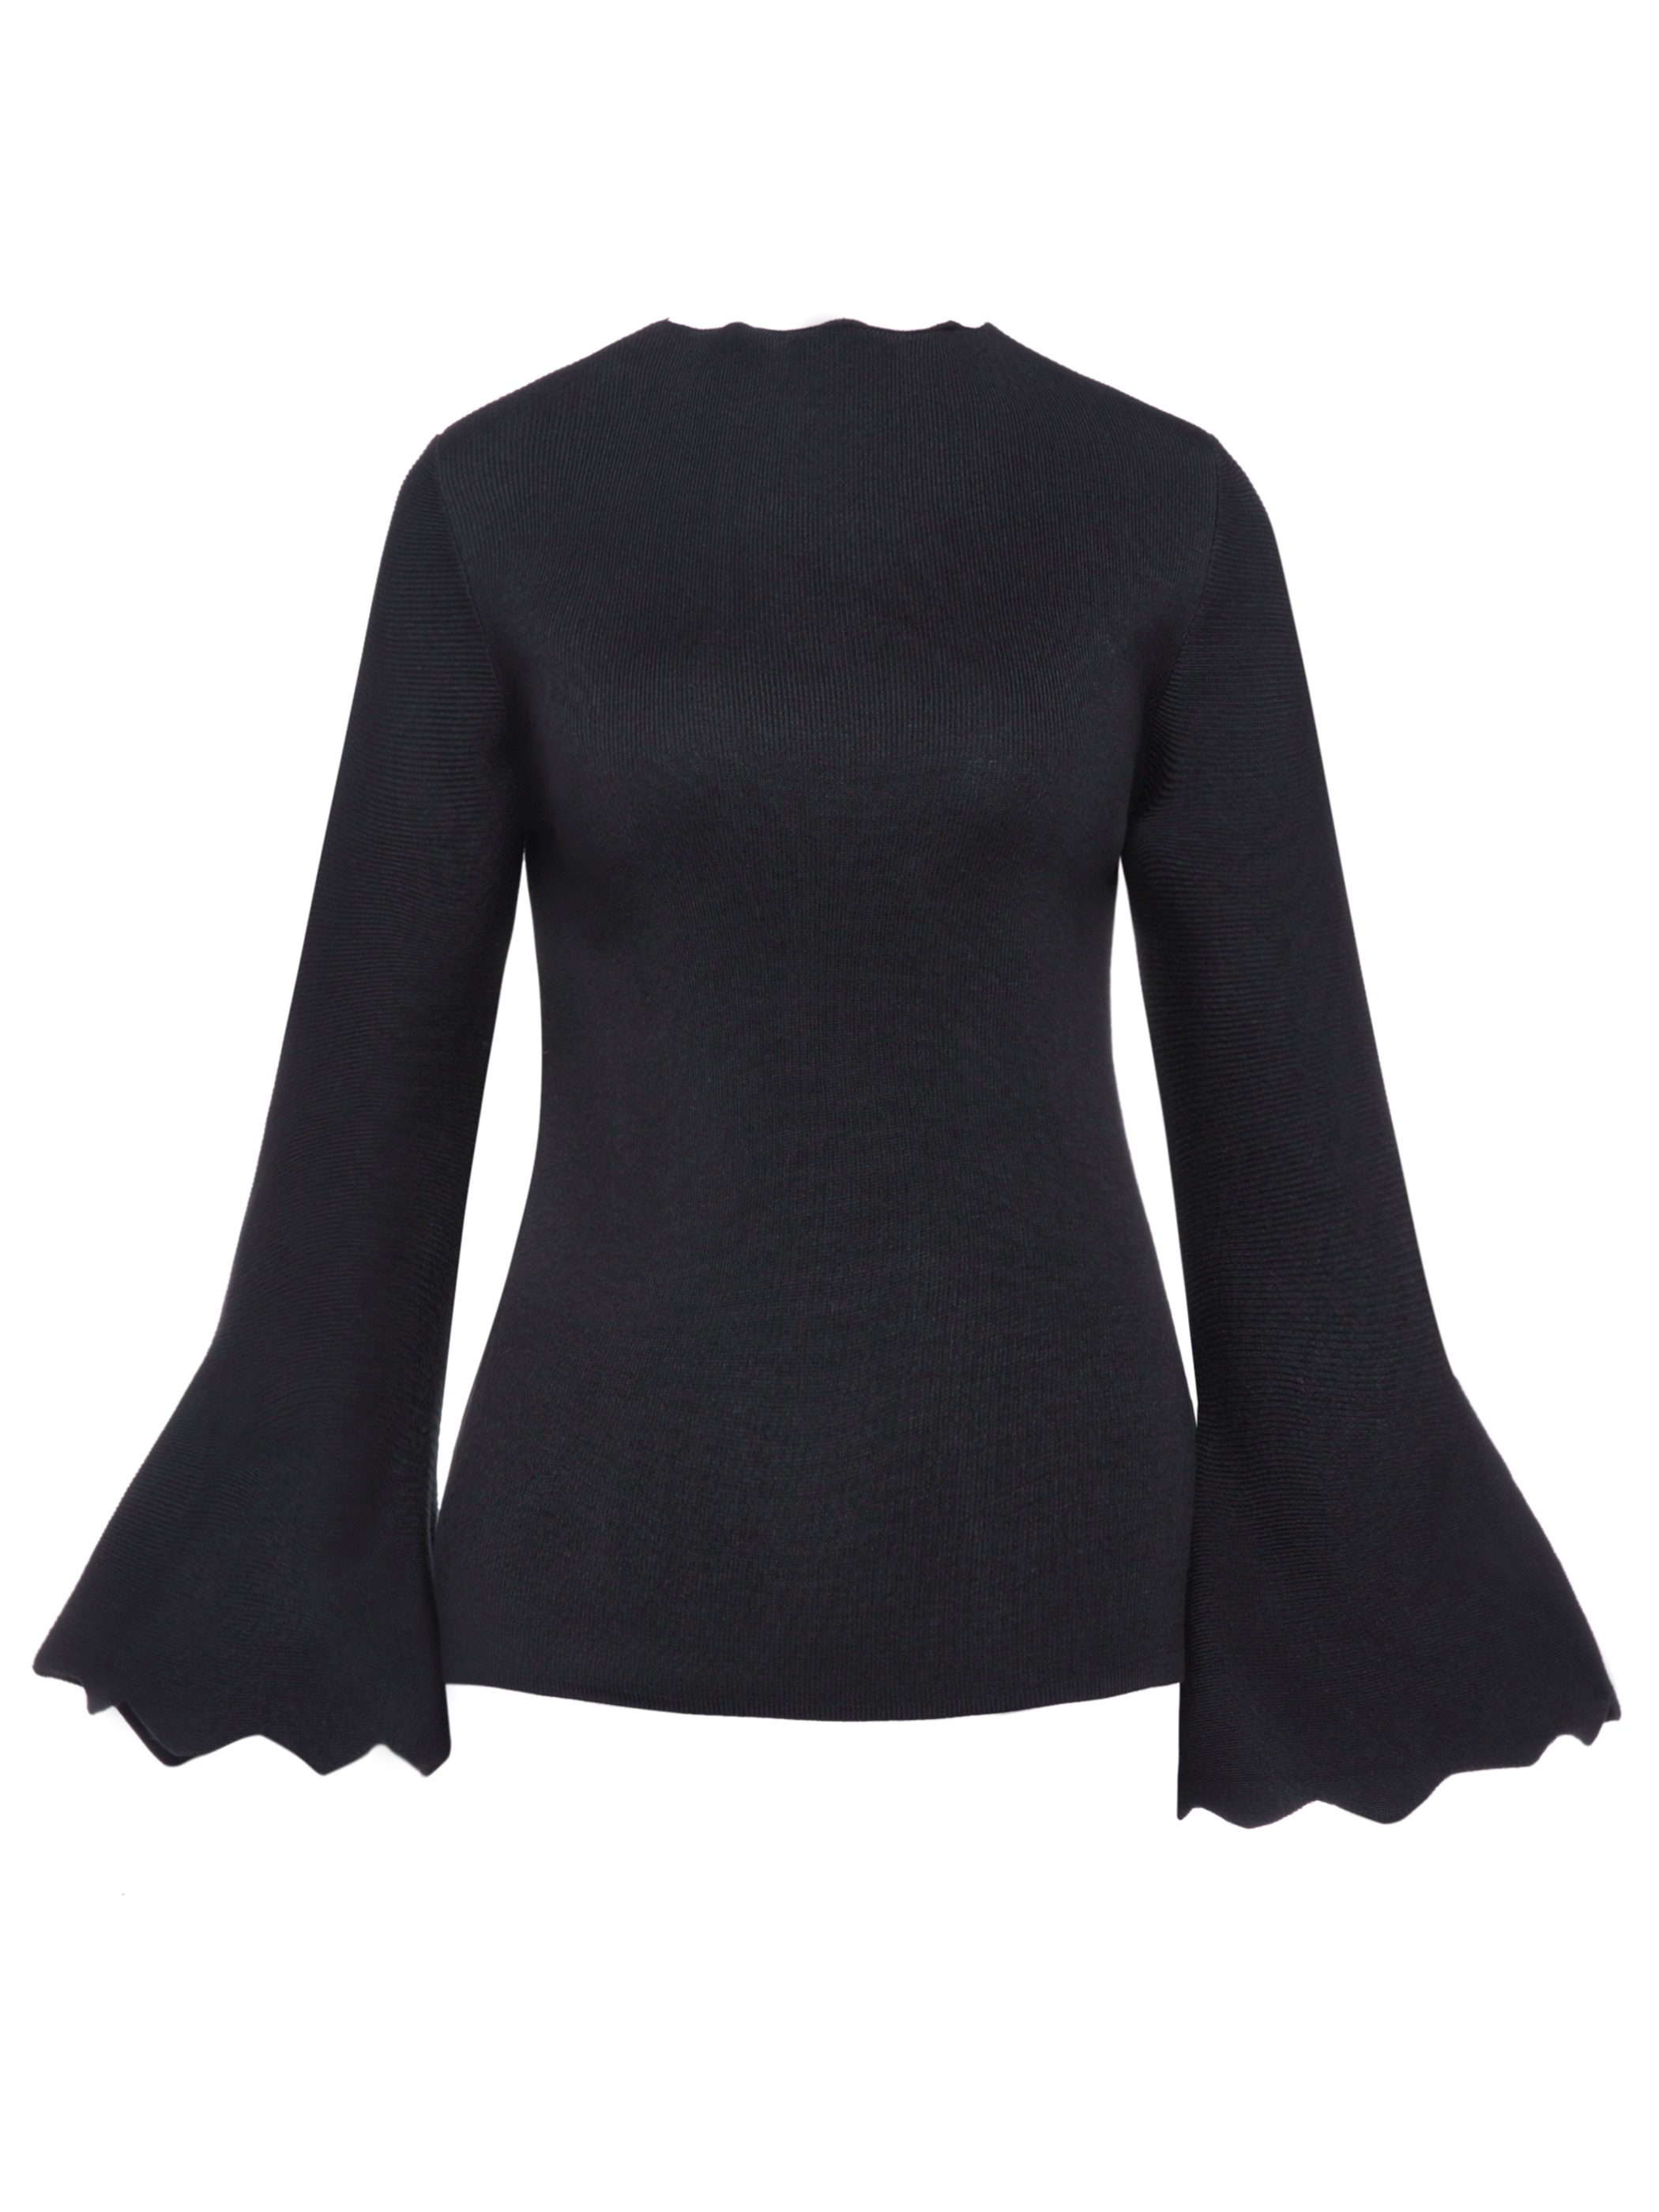 Ericdress Plain Flare Sleeve Pullover Knitwear